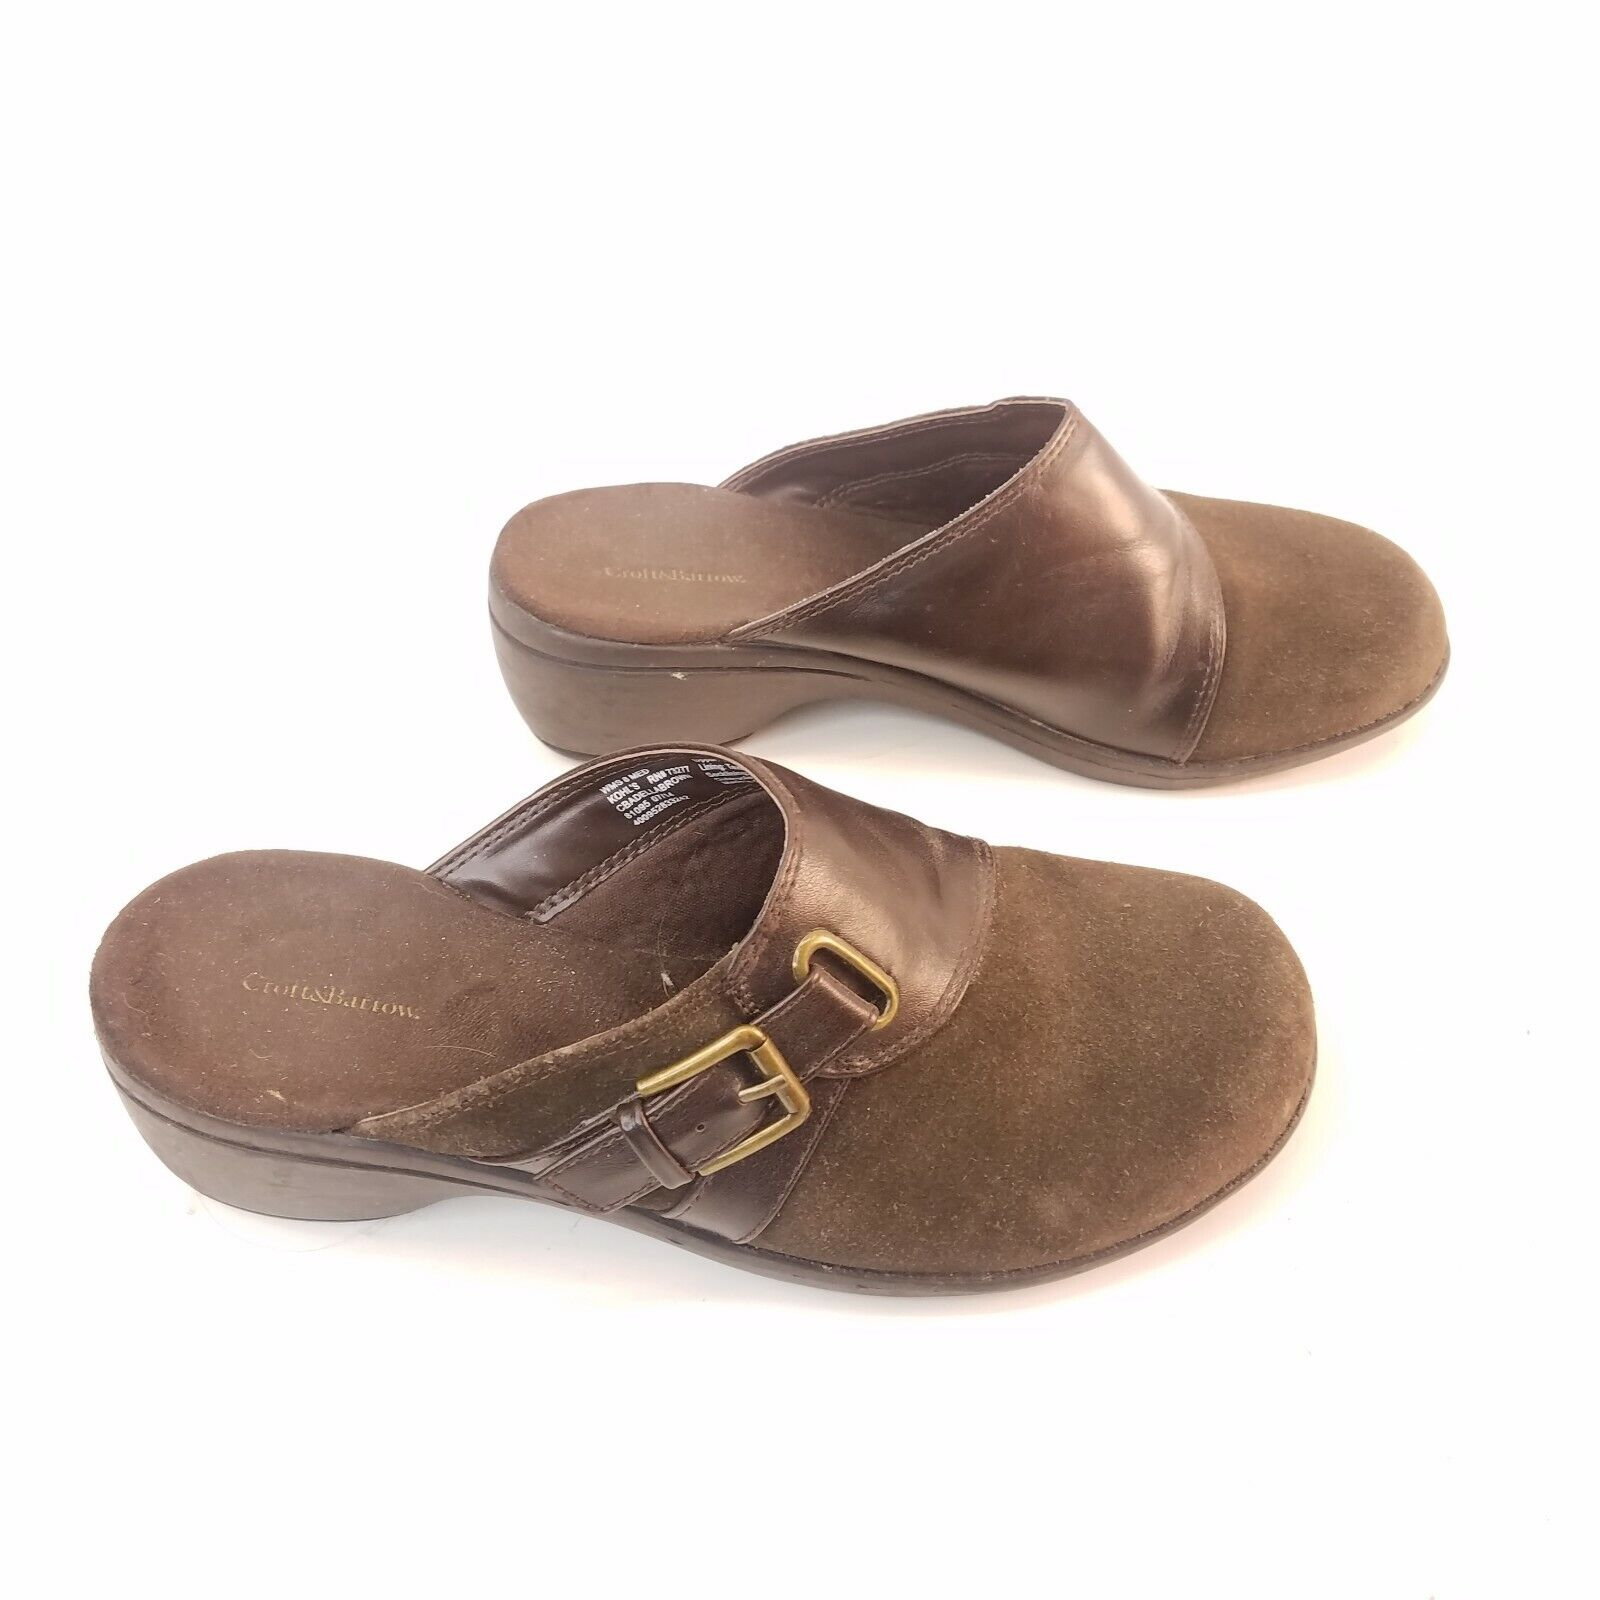 Croft Barrow Brown Suede Clogs Shoes Backless Slip On Mules Womens Size 8